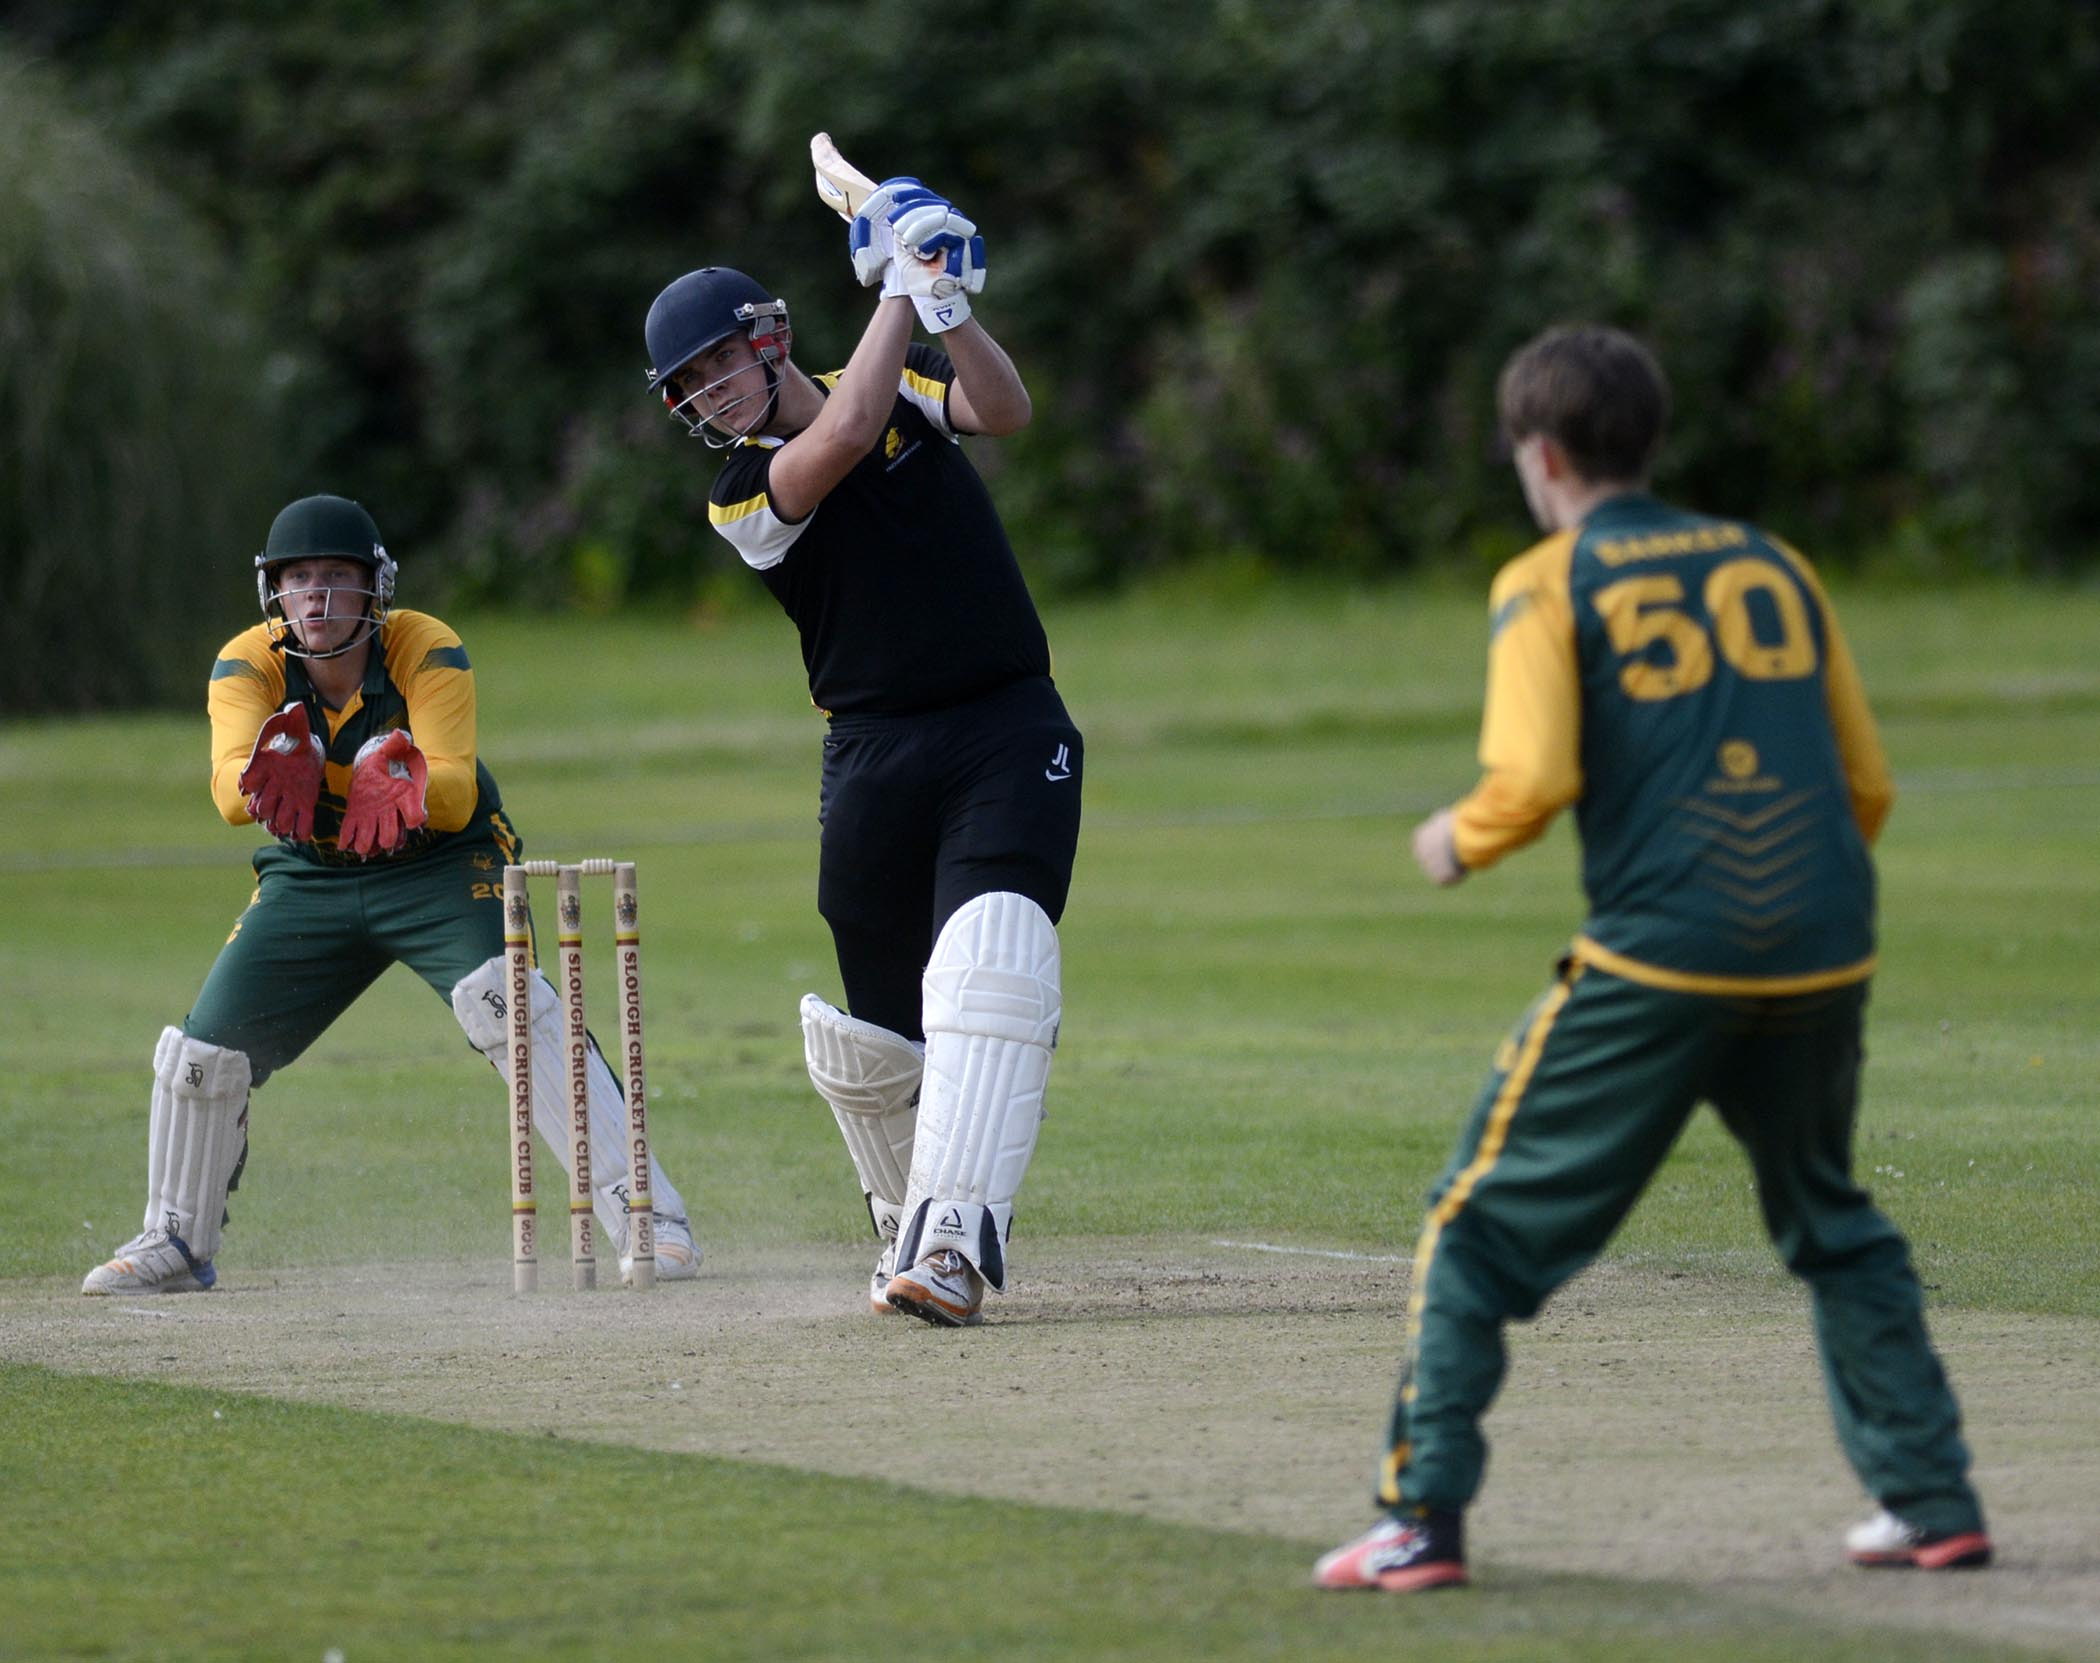 Finchampstead Under 19s batsman Josh Lincoln attacks during their semi final against Wokingham